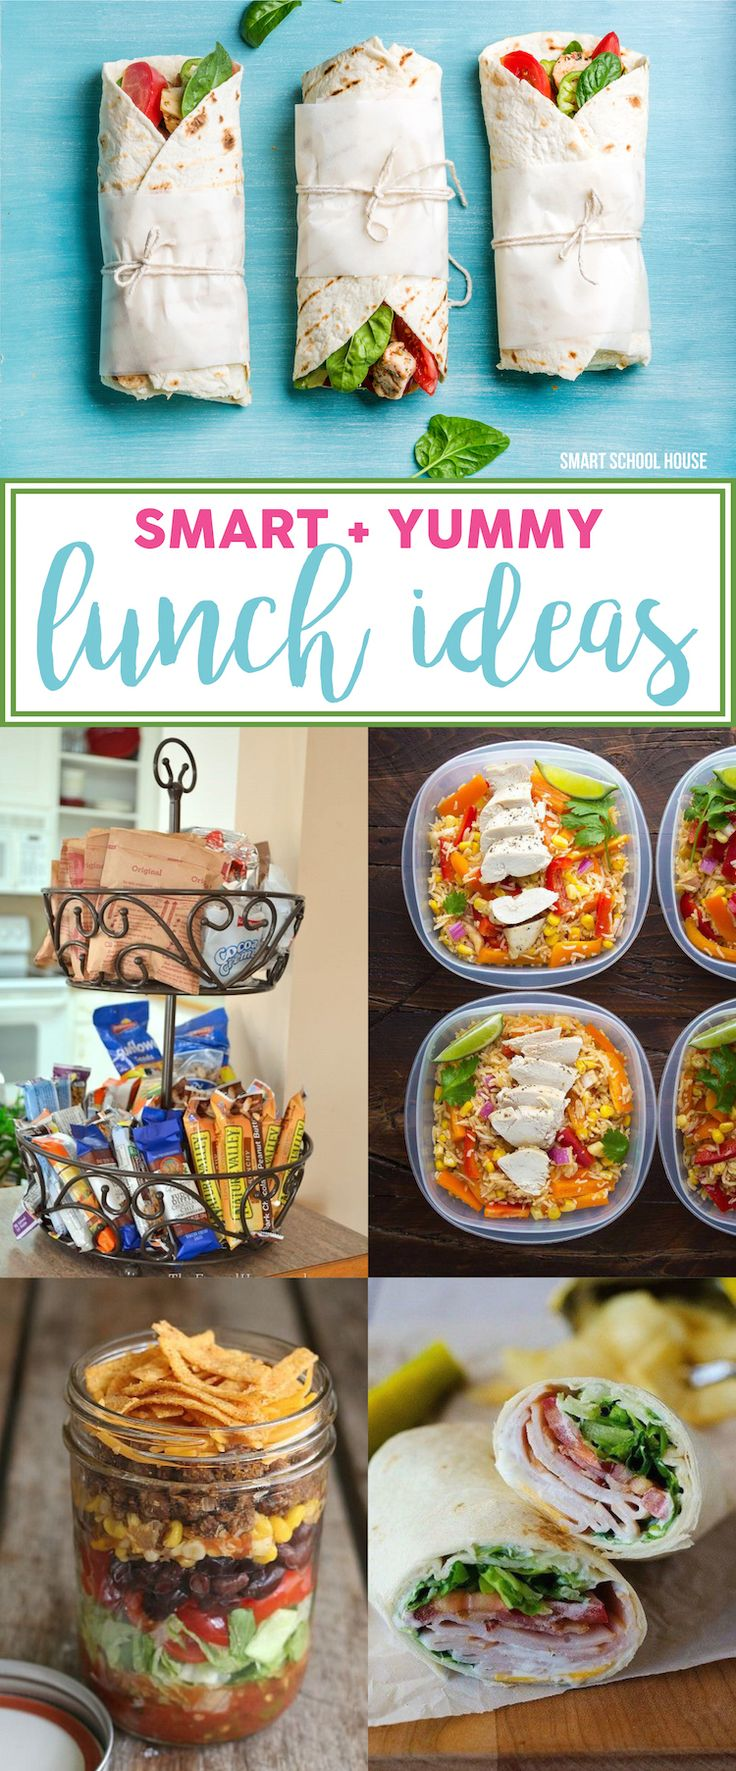 Smart and Yummy lunch ideas - recipes for yourself, a carful of kids, or even if you stay home and have a toddler to feed, new ideas are always neat to see!